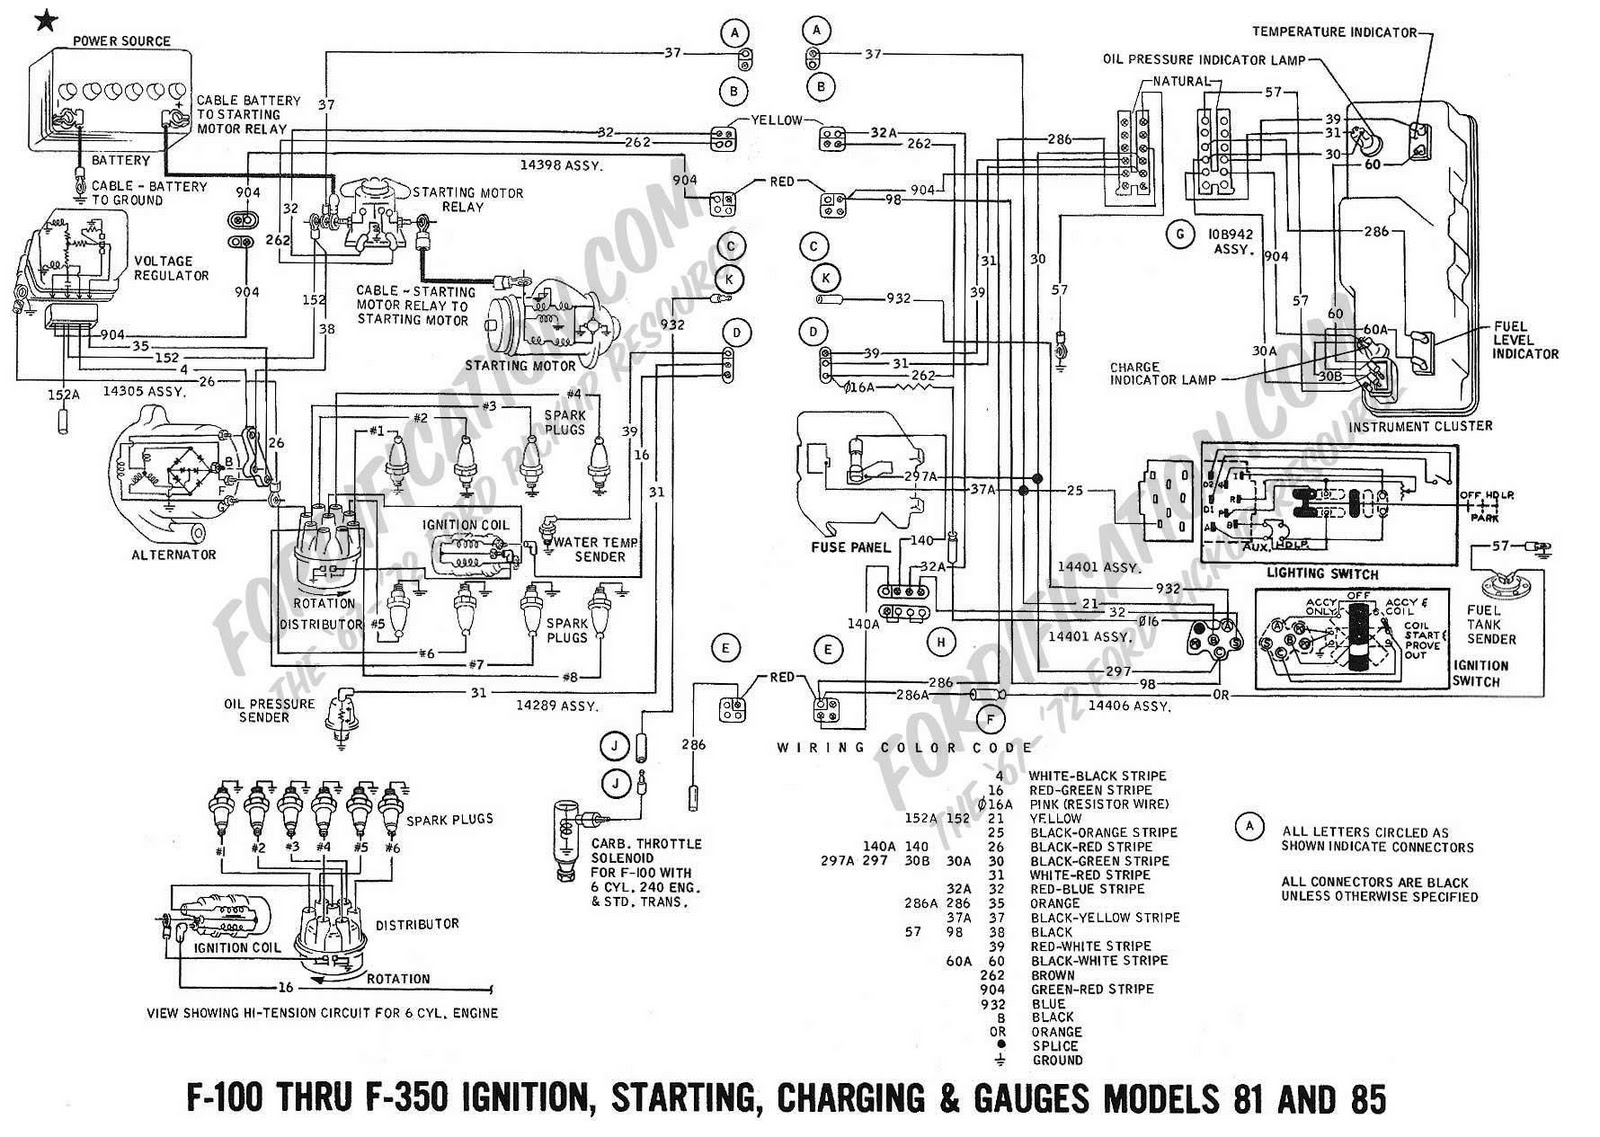 Ford F100 F350 Ignition Starting Charging And Gauges Wiring Diagram